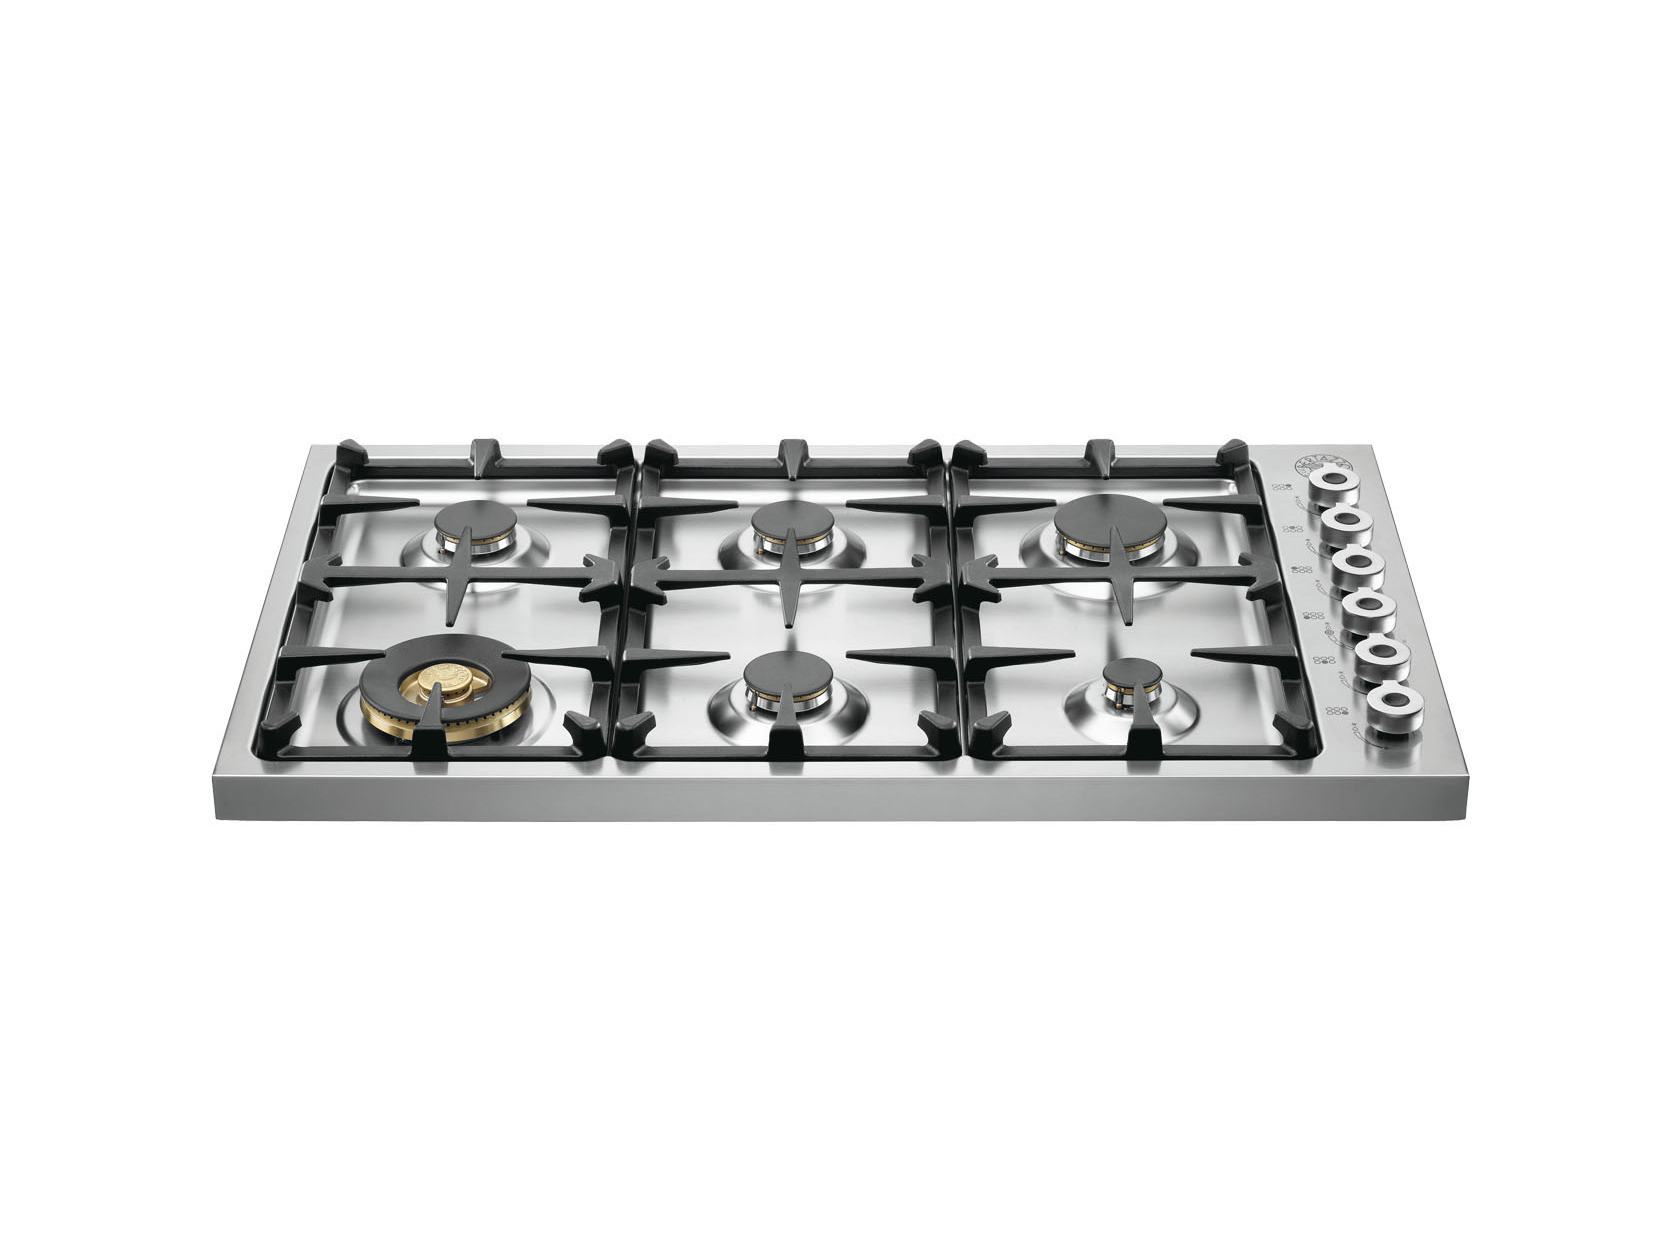 36 Drop-in Cooktop 6-burner | Bertazzoni - Stainless